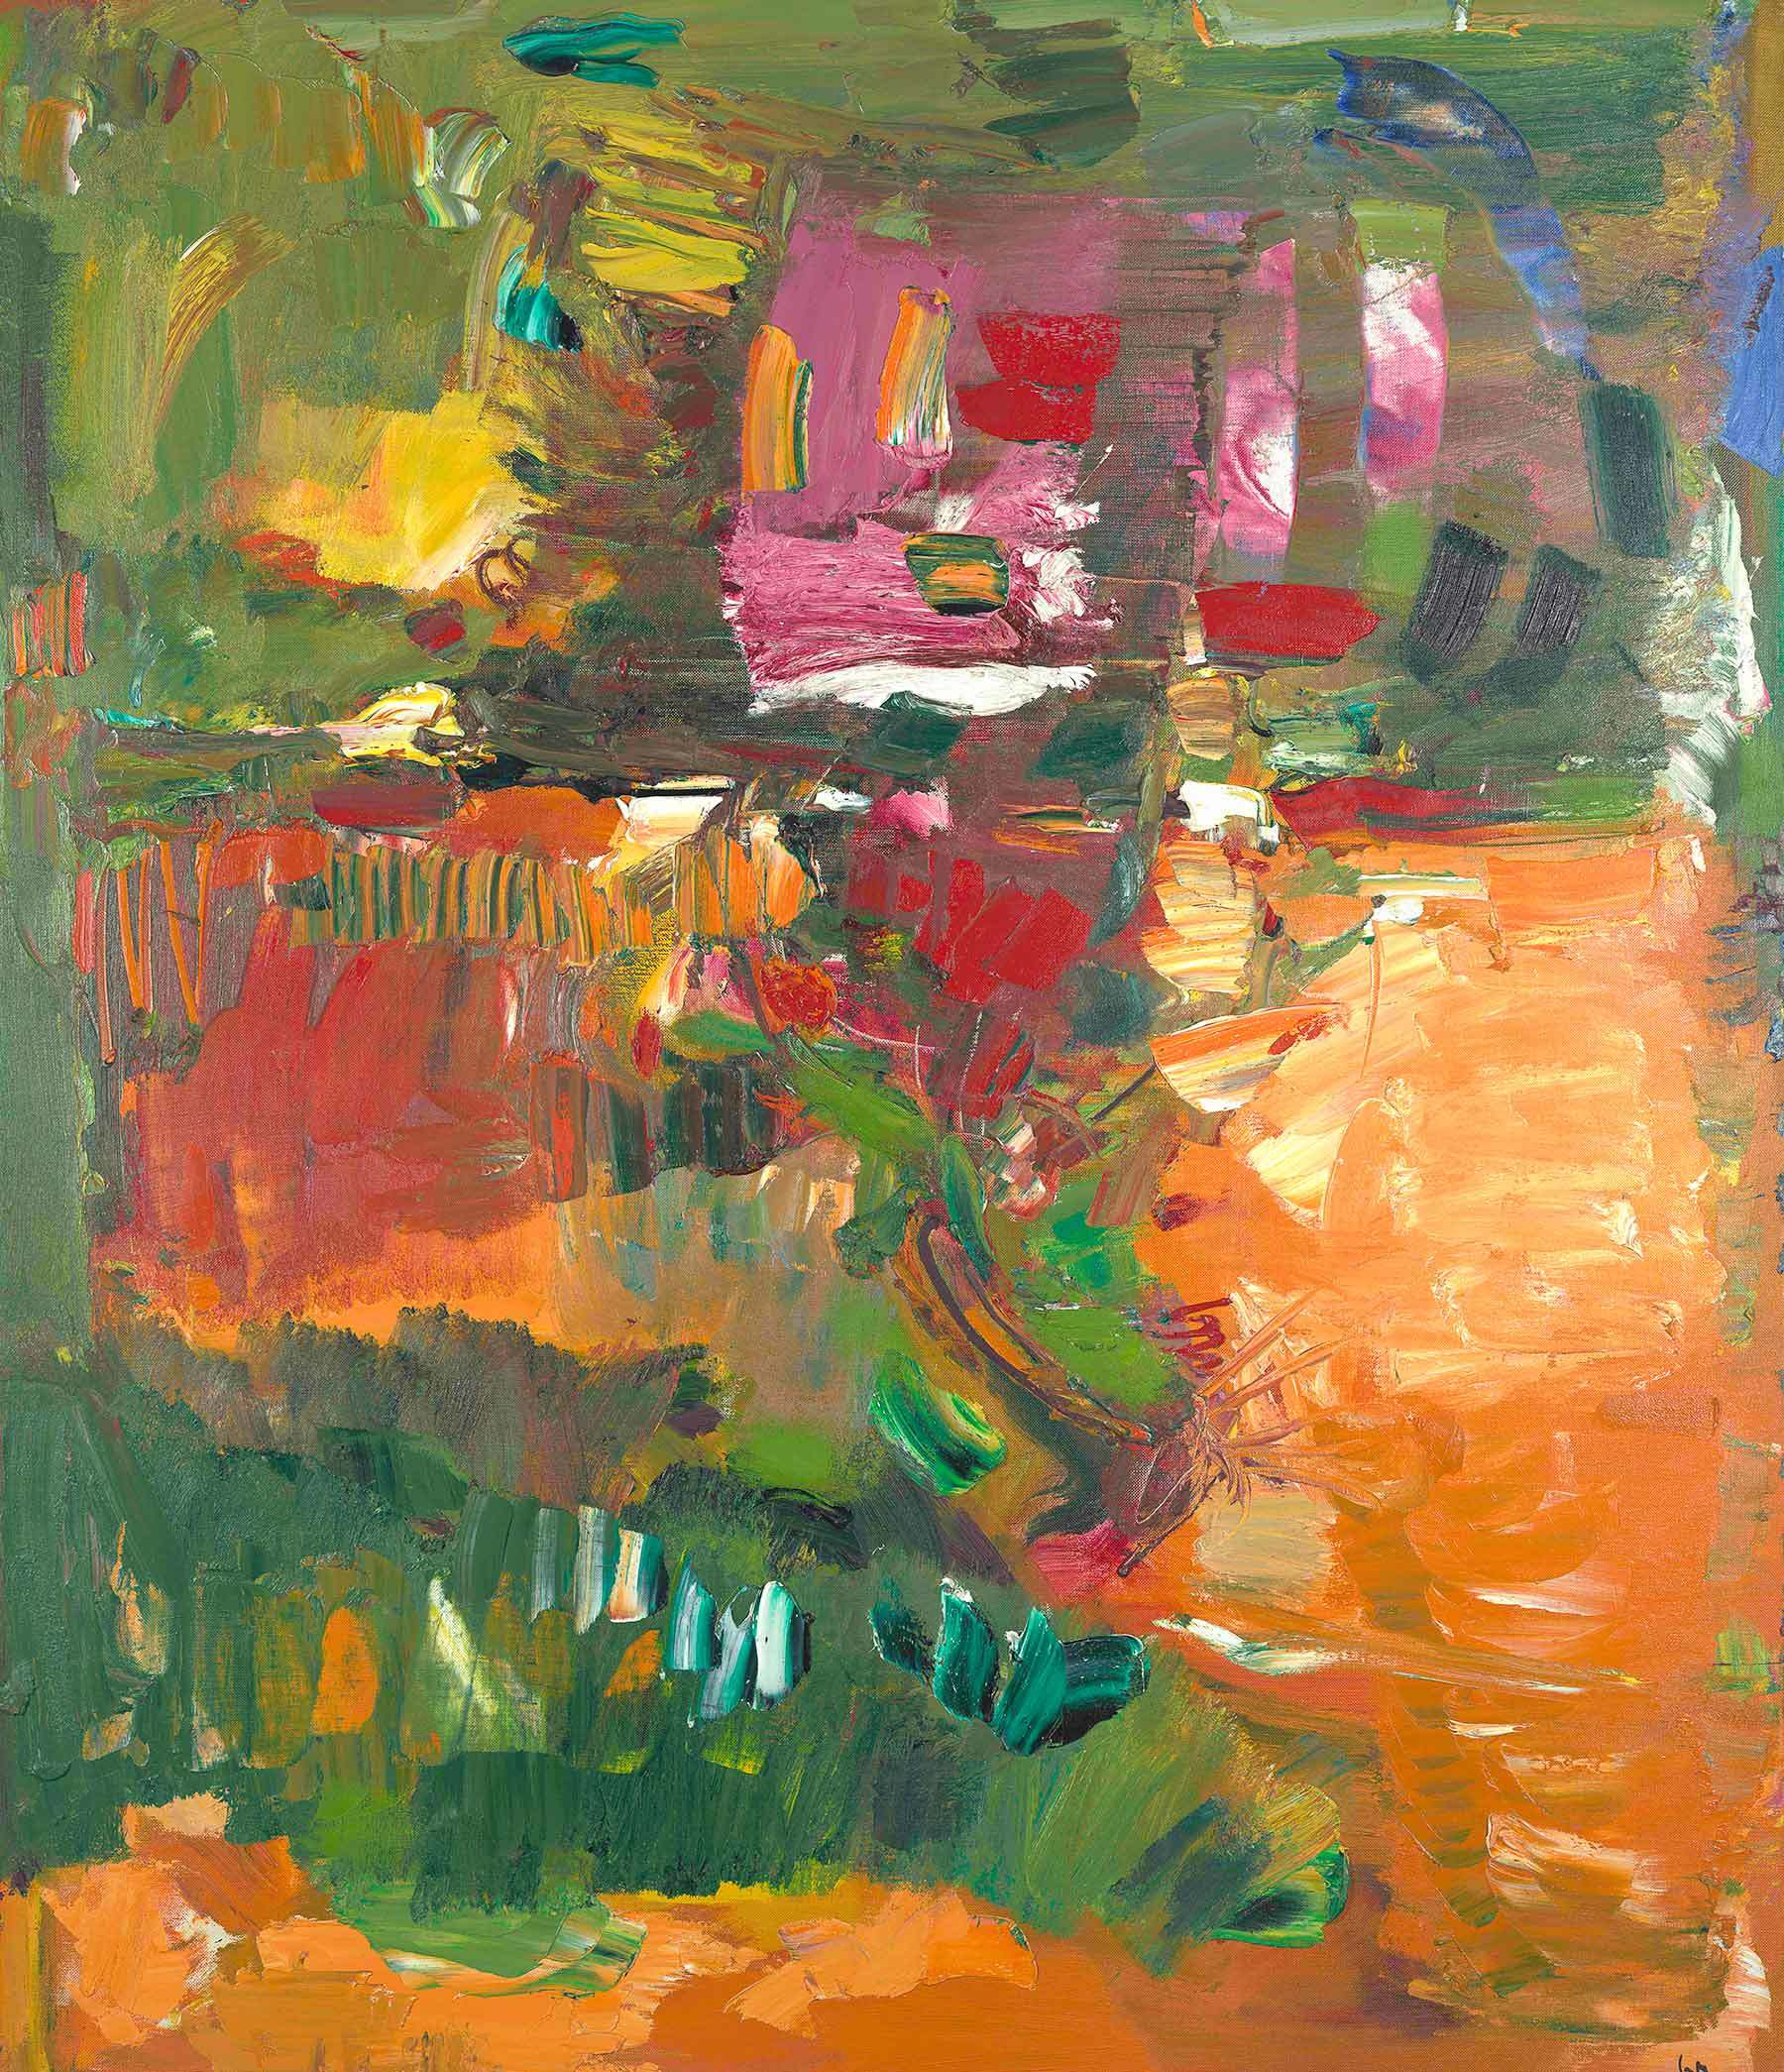 Hans Hofmann: In the Wake of the Hurricane, 1960